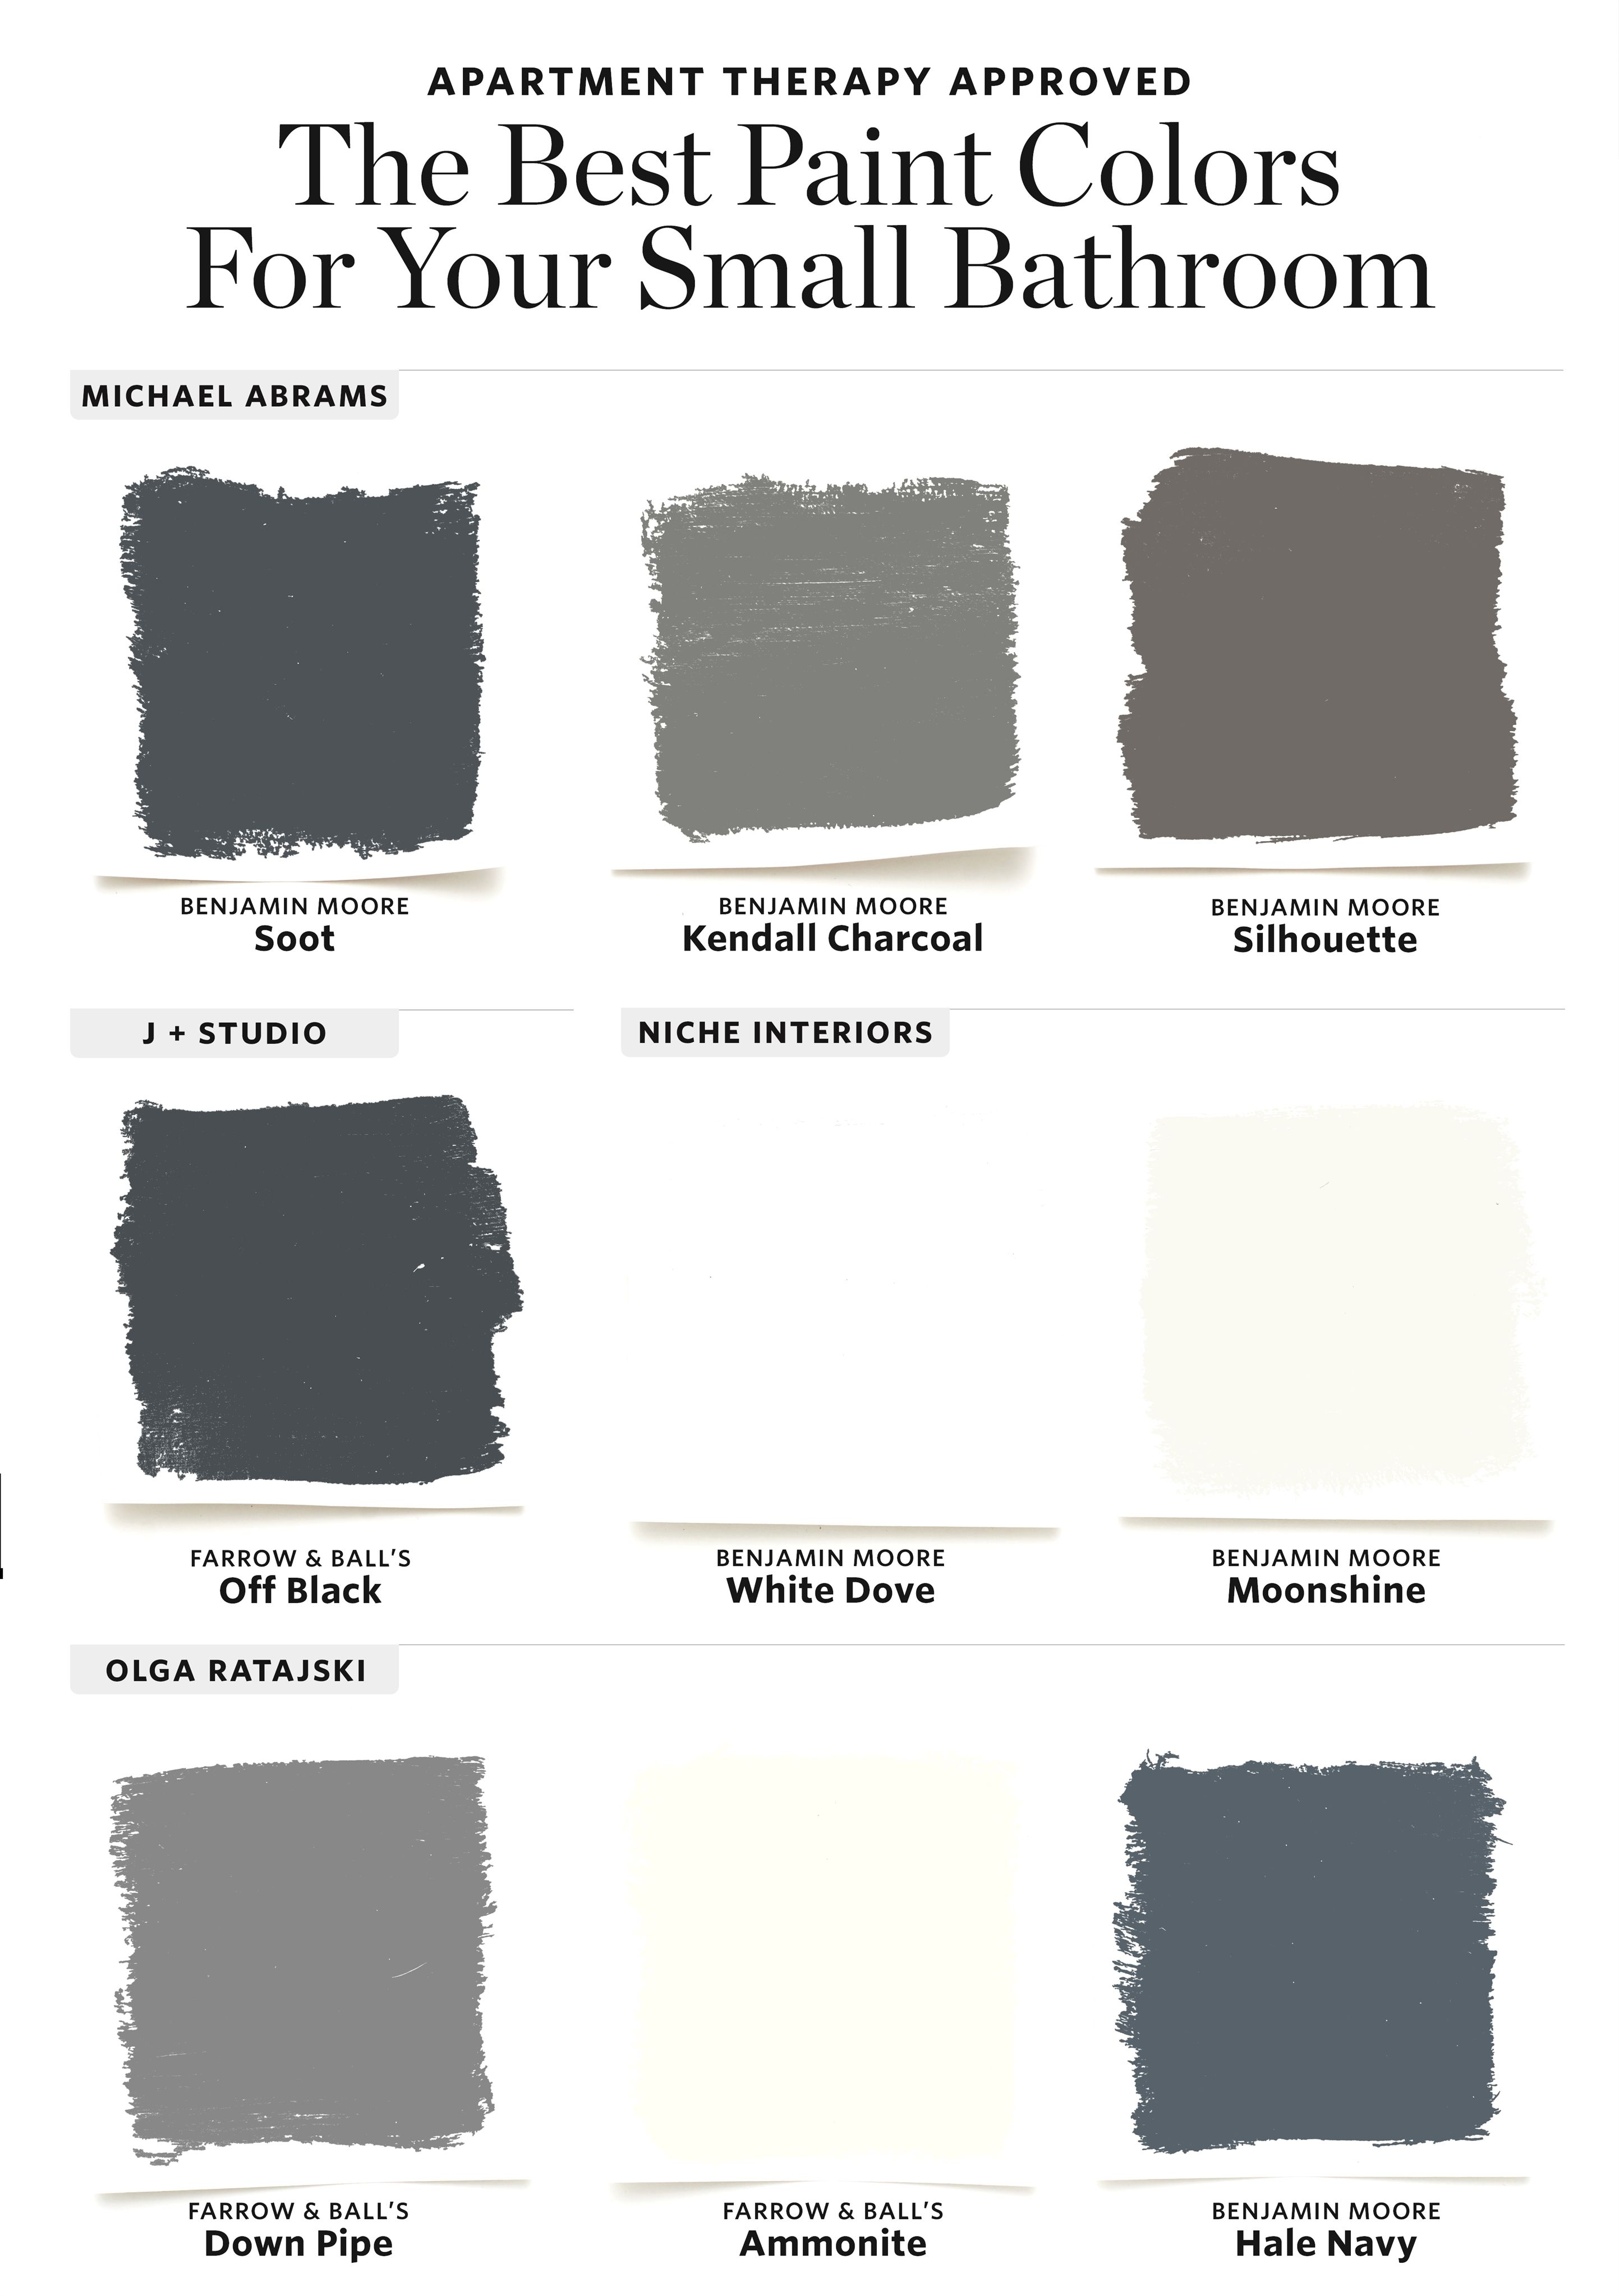 16 Perfect Paint Shades for Your Bathroom in 2020 | Small ...